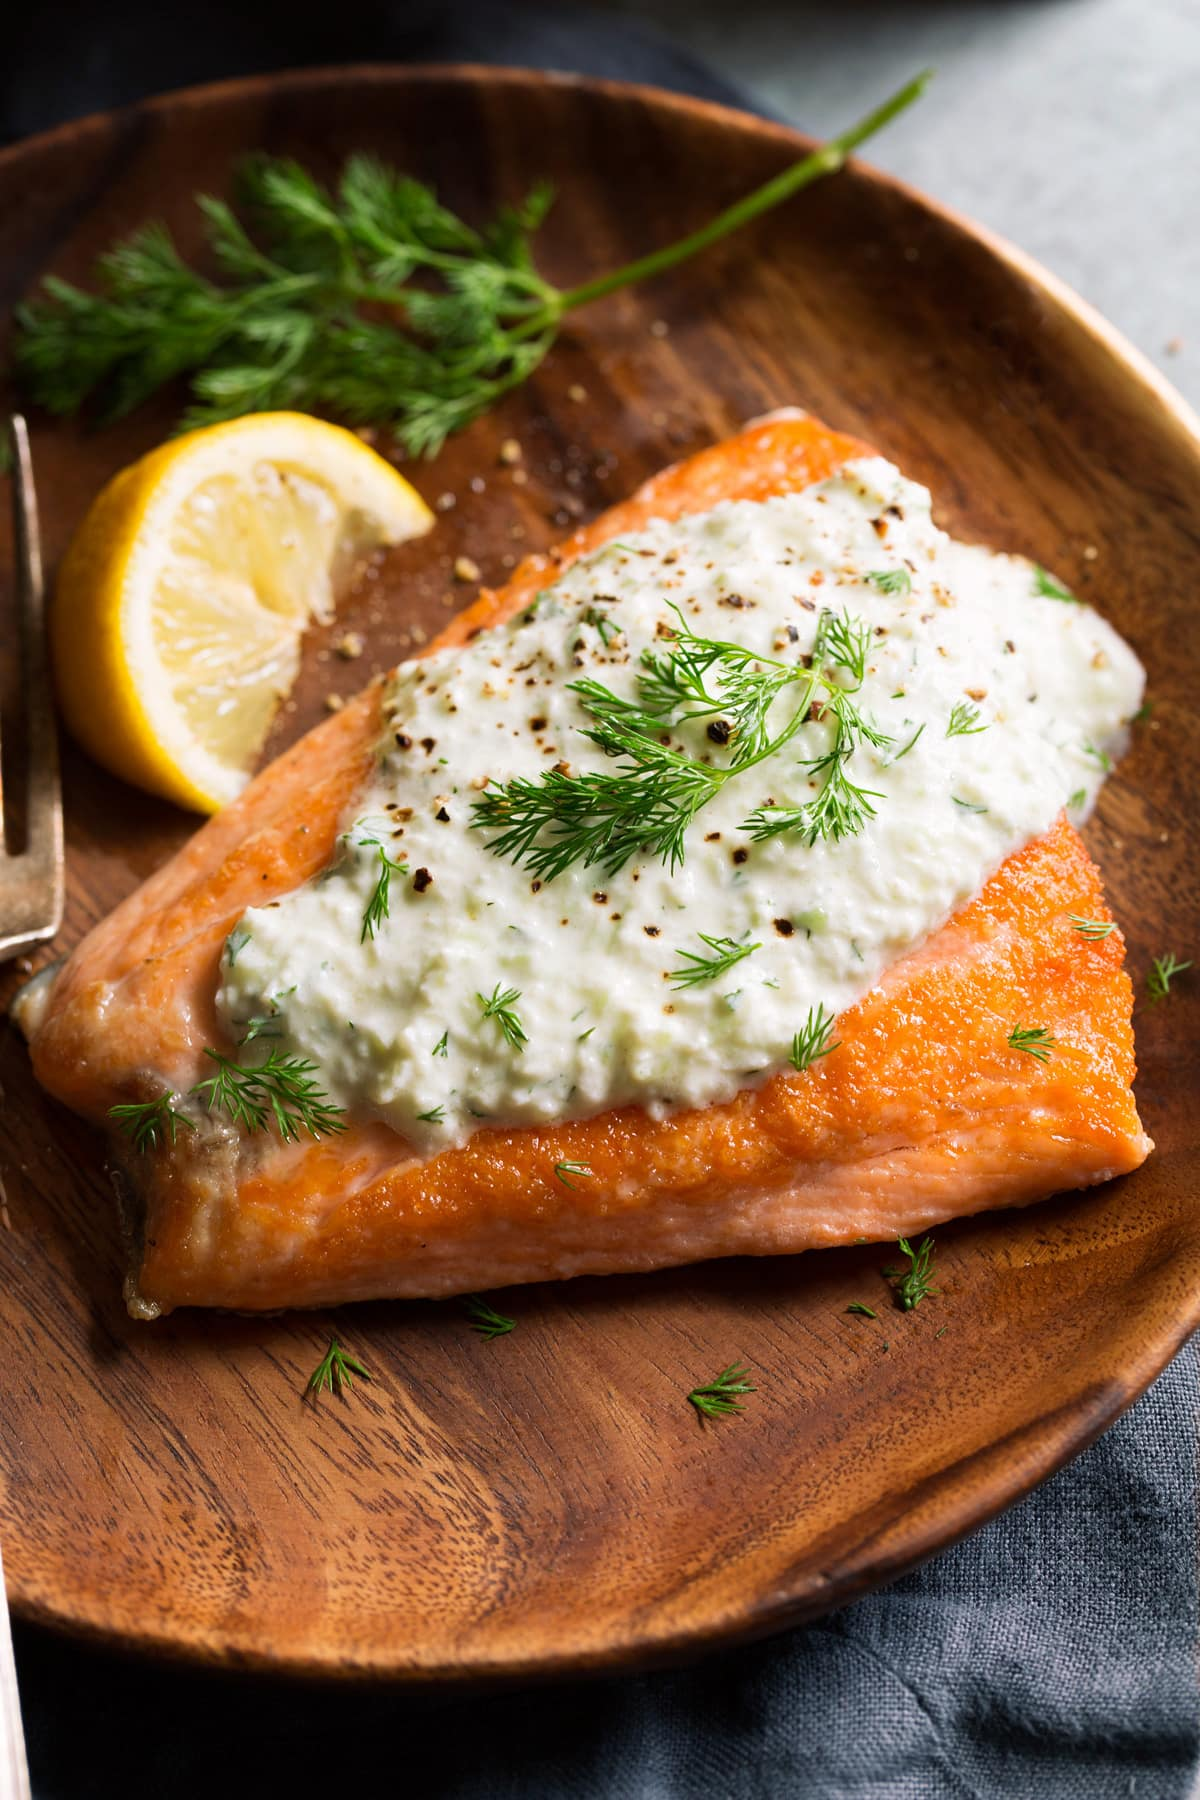 Showing serving suggestion pairing tzatziki sauce atop a salmon fillet.